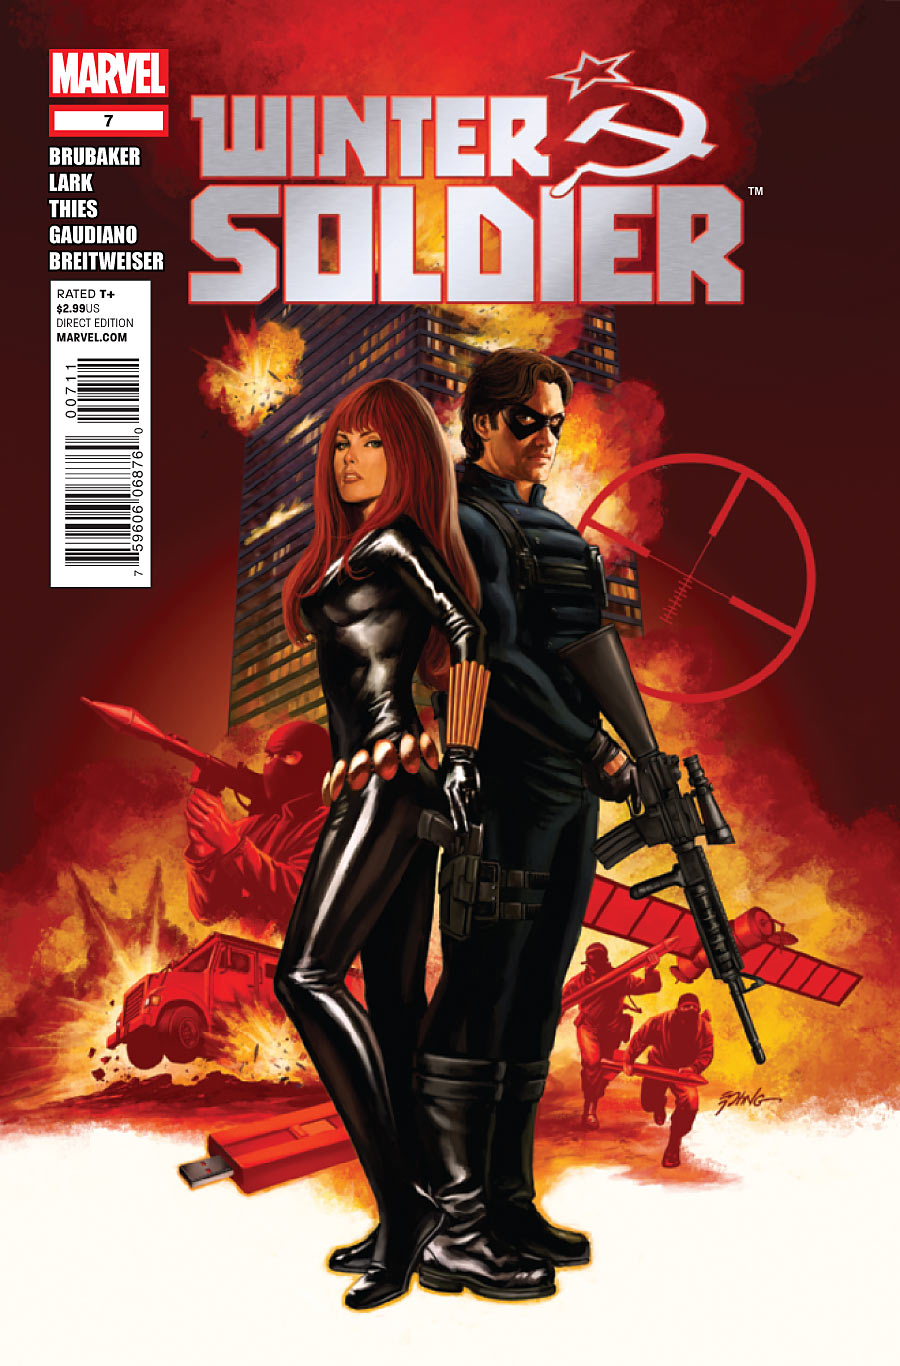 Copertina di Winter Soldier 7 del 2012, di Steve Epting